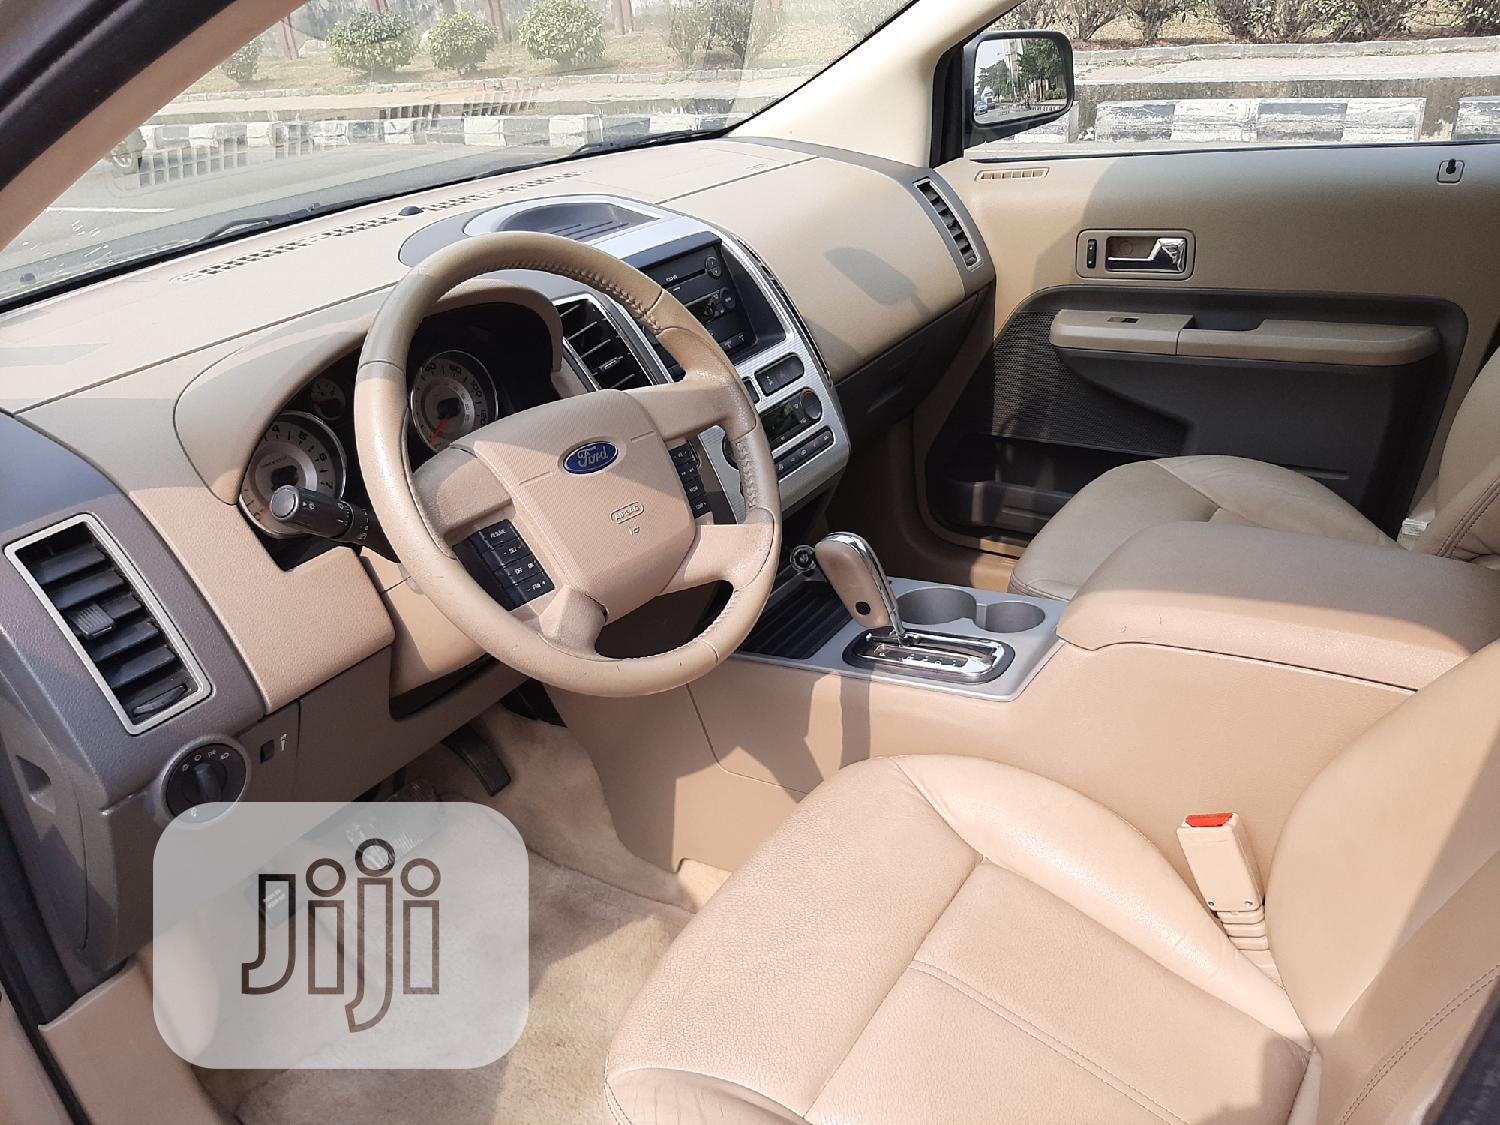 Archive: Ford Edge 2007 SE 4dr FWD (3.5L 6cyl 6A) Gold